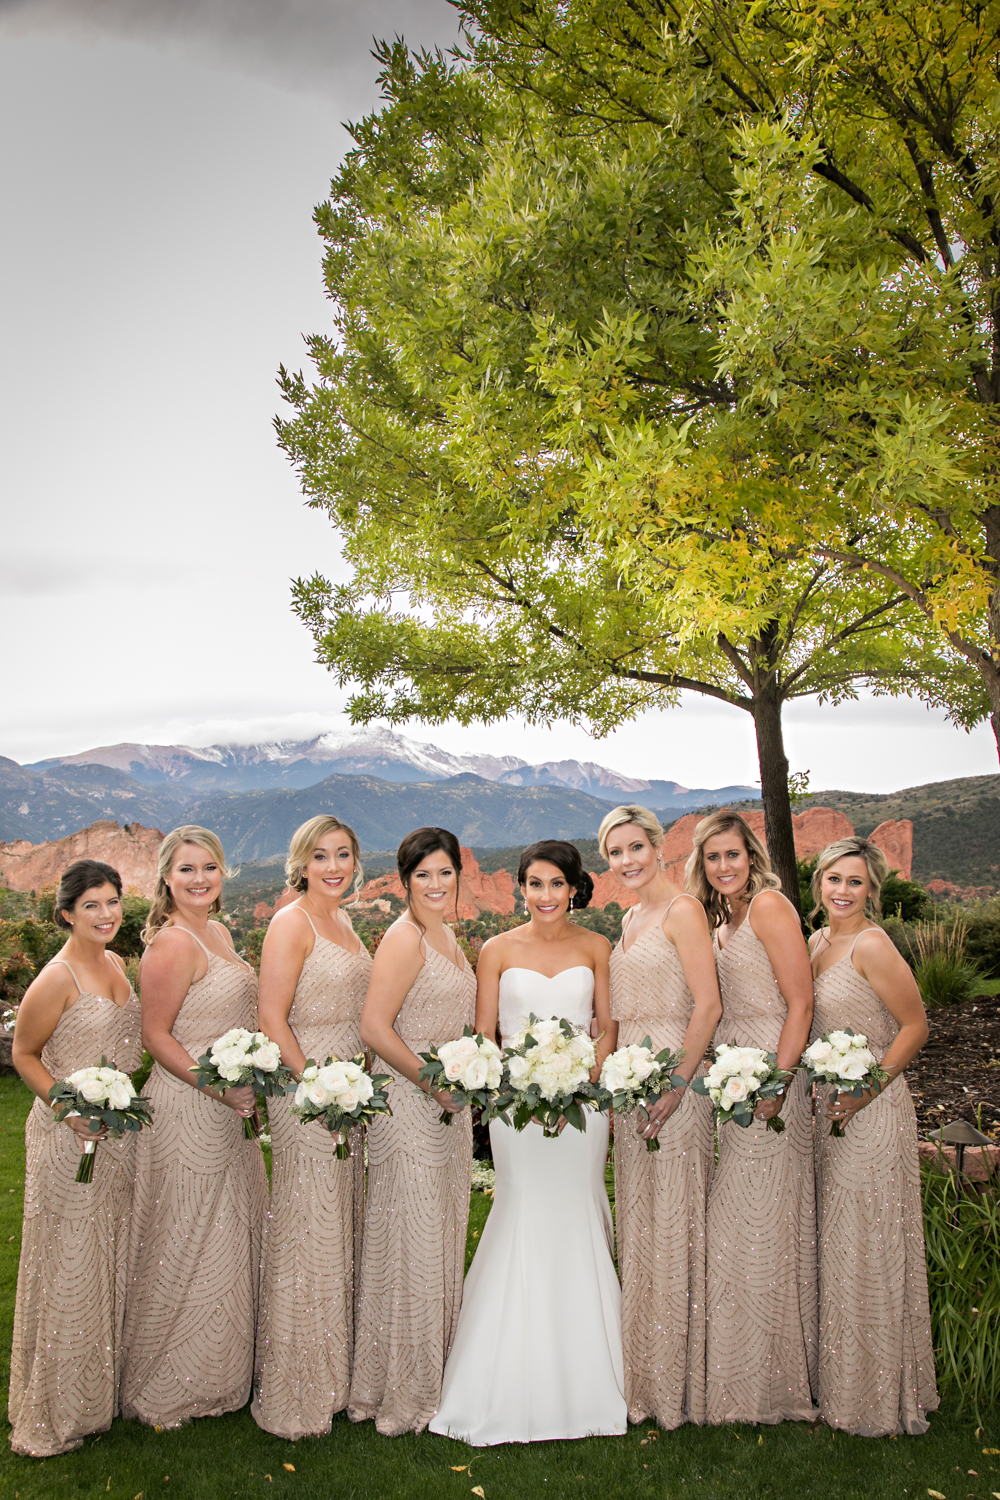 PaigeEden_Weddings_Broadmoor_035.jpg